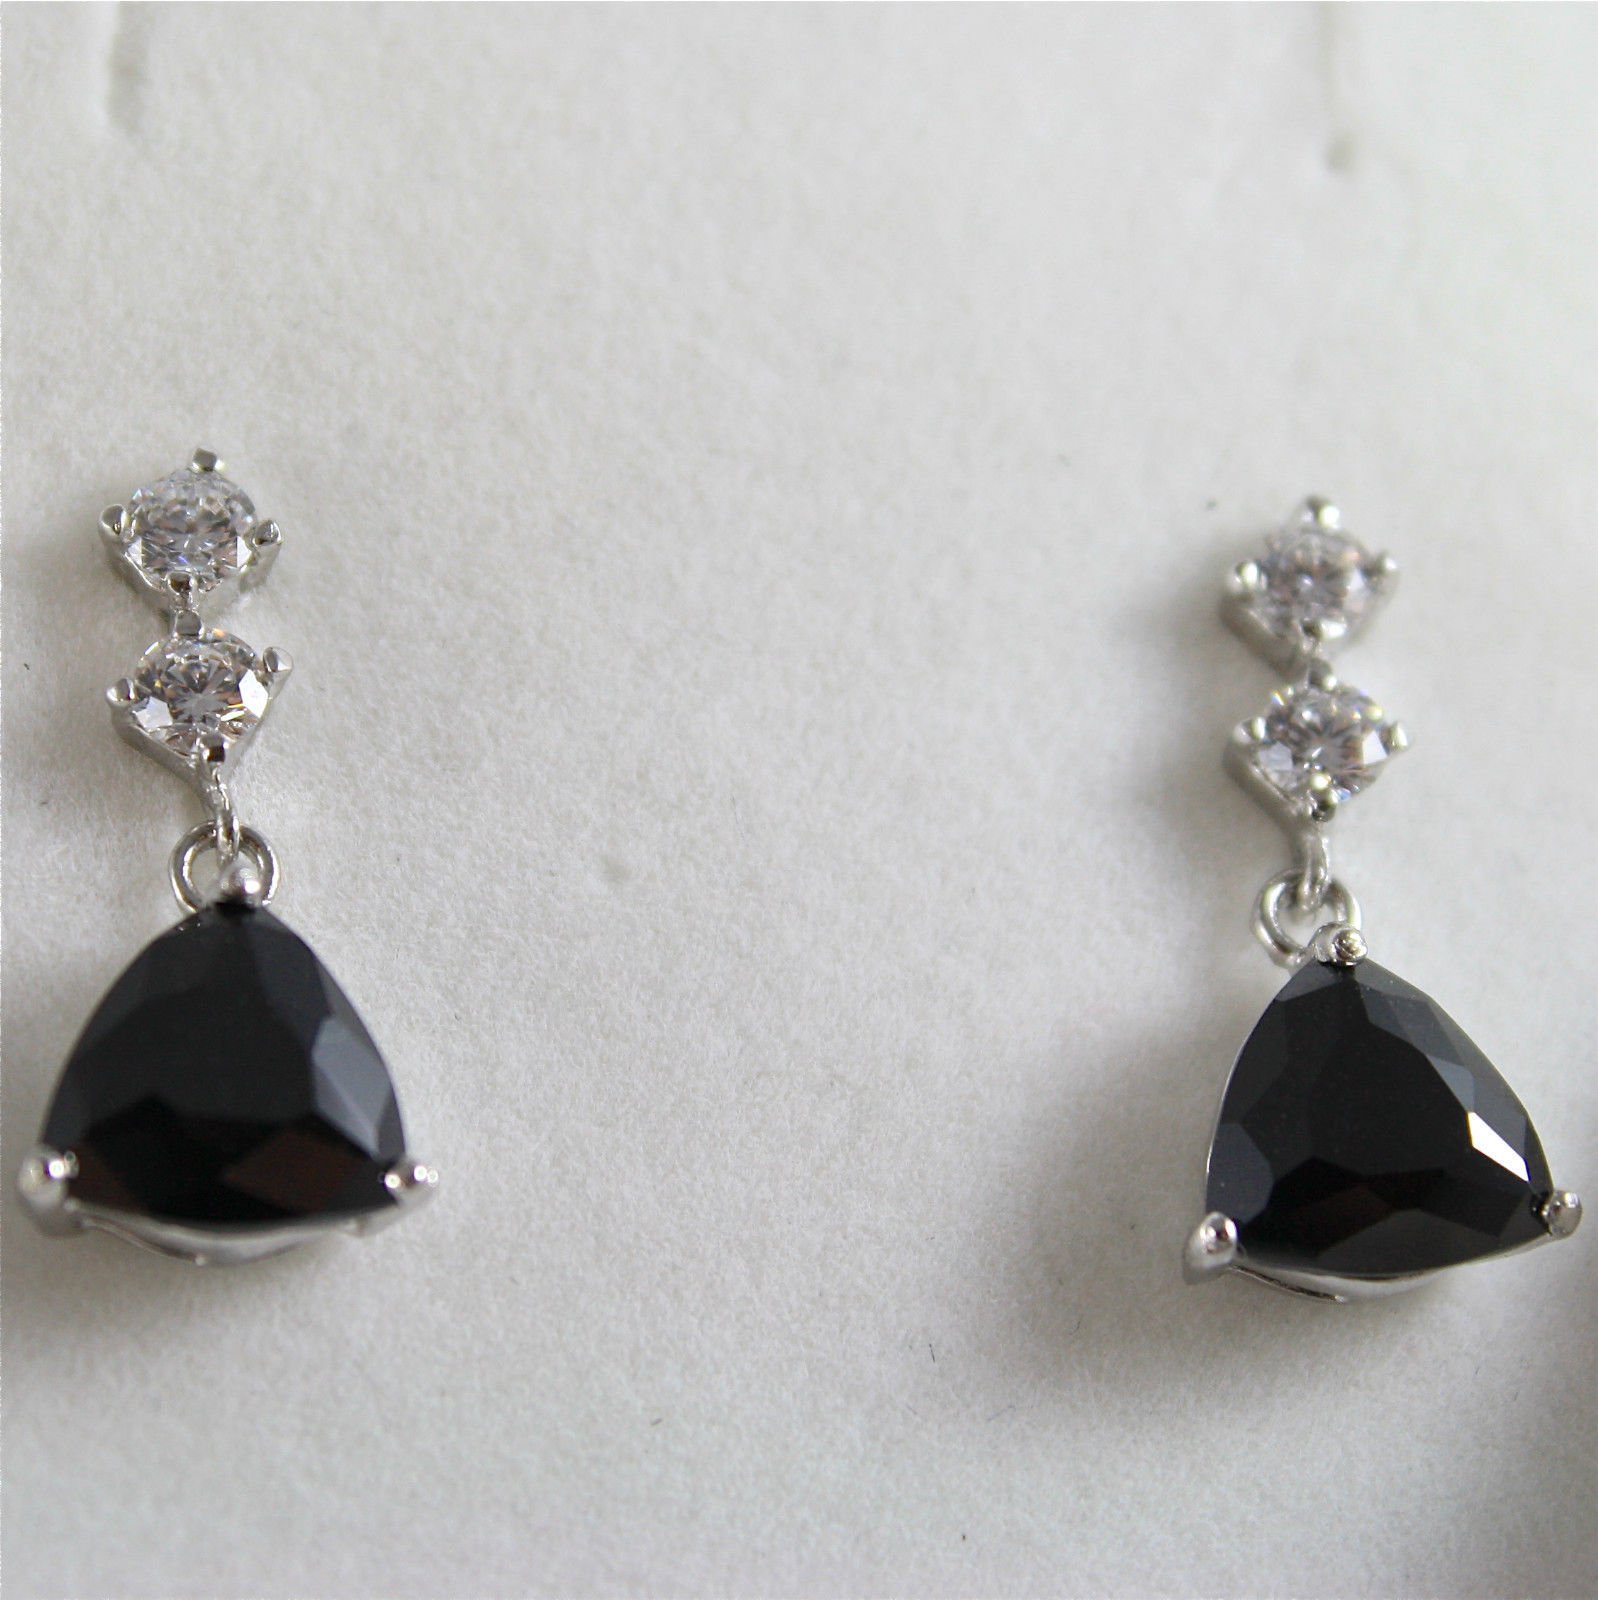 .925 RHODIUM SILVER EARRINGS, TRIANGLE CUT, BLACK CRISTAL, VINTAGE STYLE